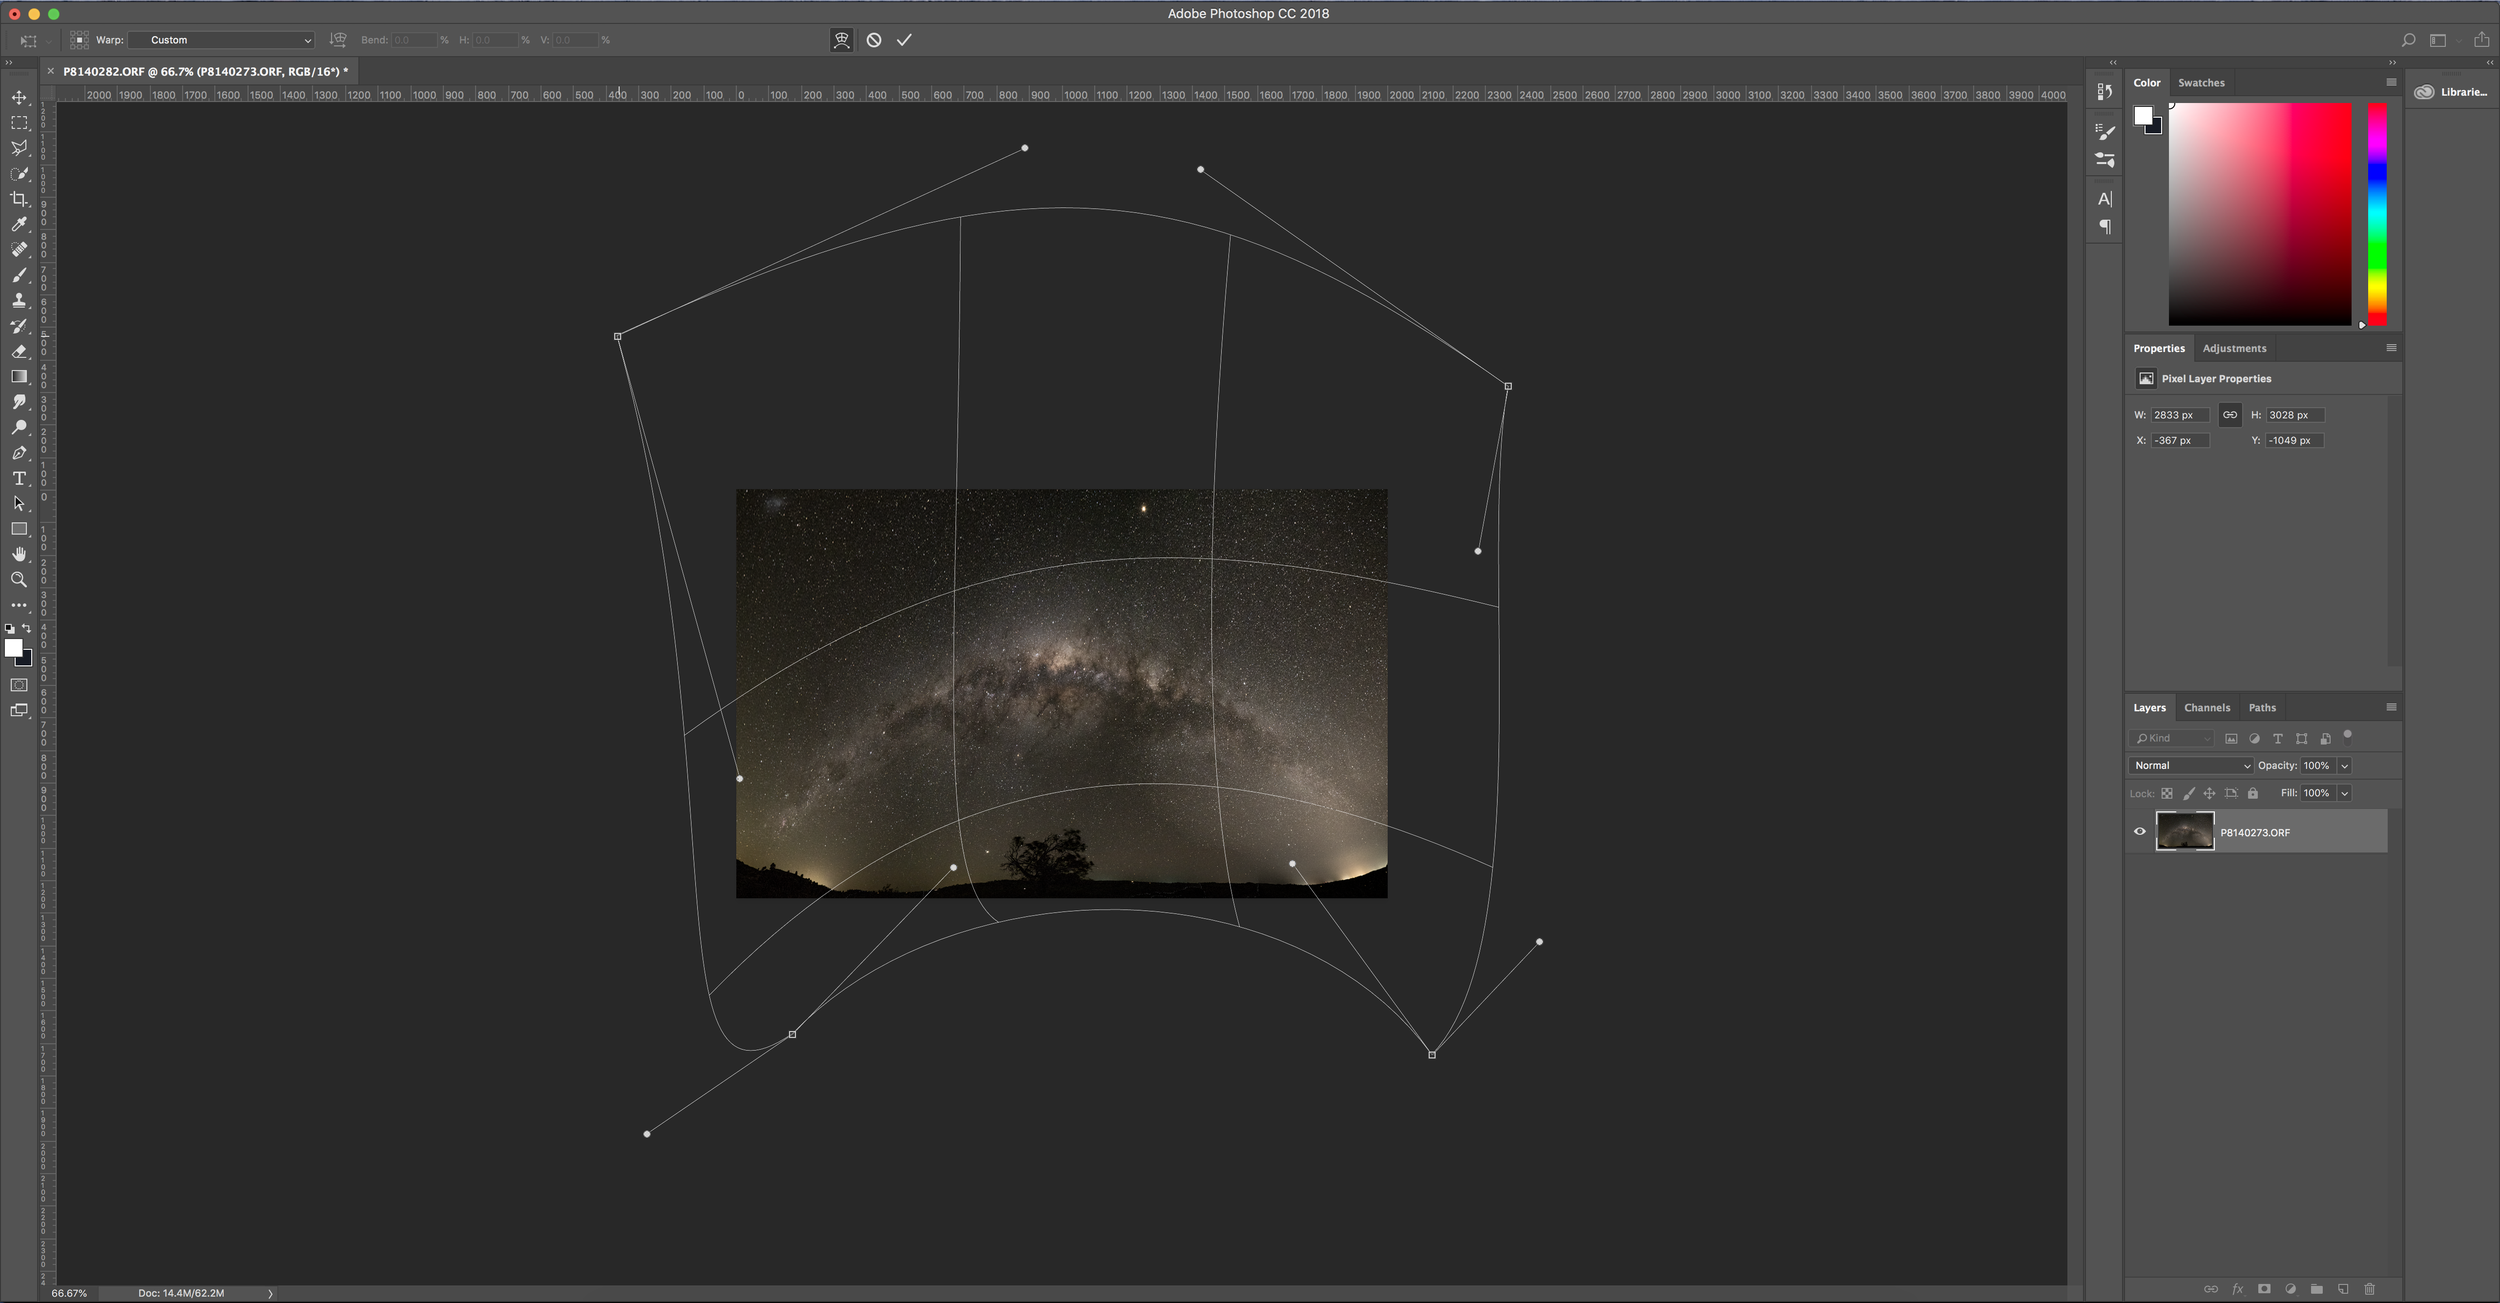 Using the Warp adjustment tool to reshape the panoramic in Adobe Photoshop